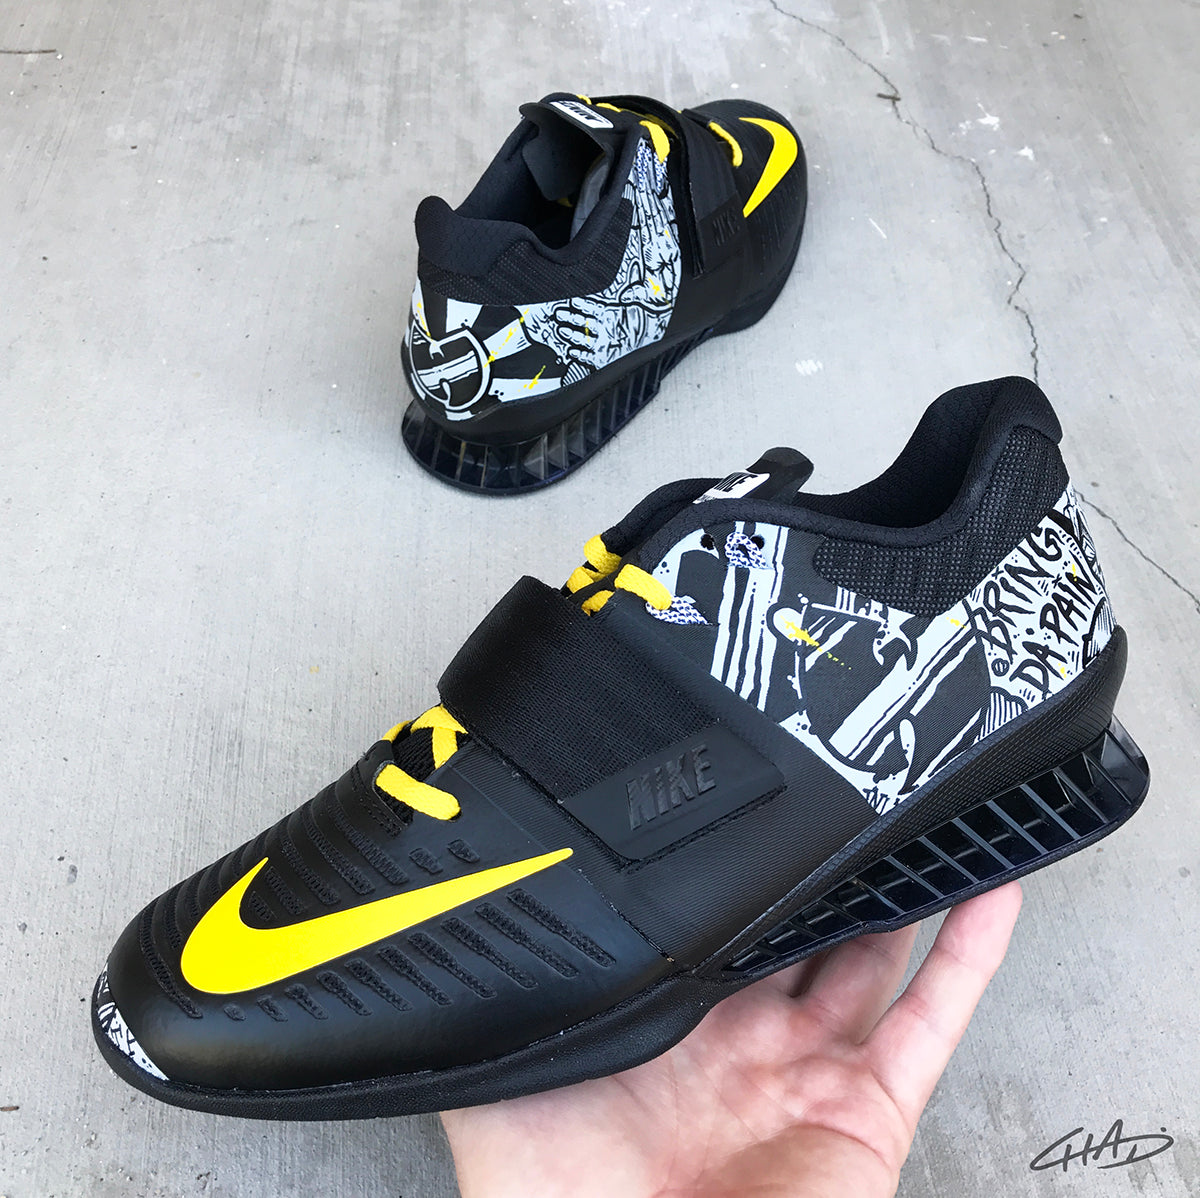 Enter the Wu - Hand painted Nike Romaleos 3 - olympic weightlifting crossfit shoes